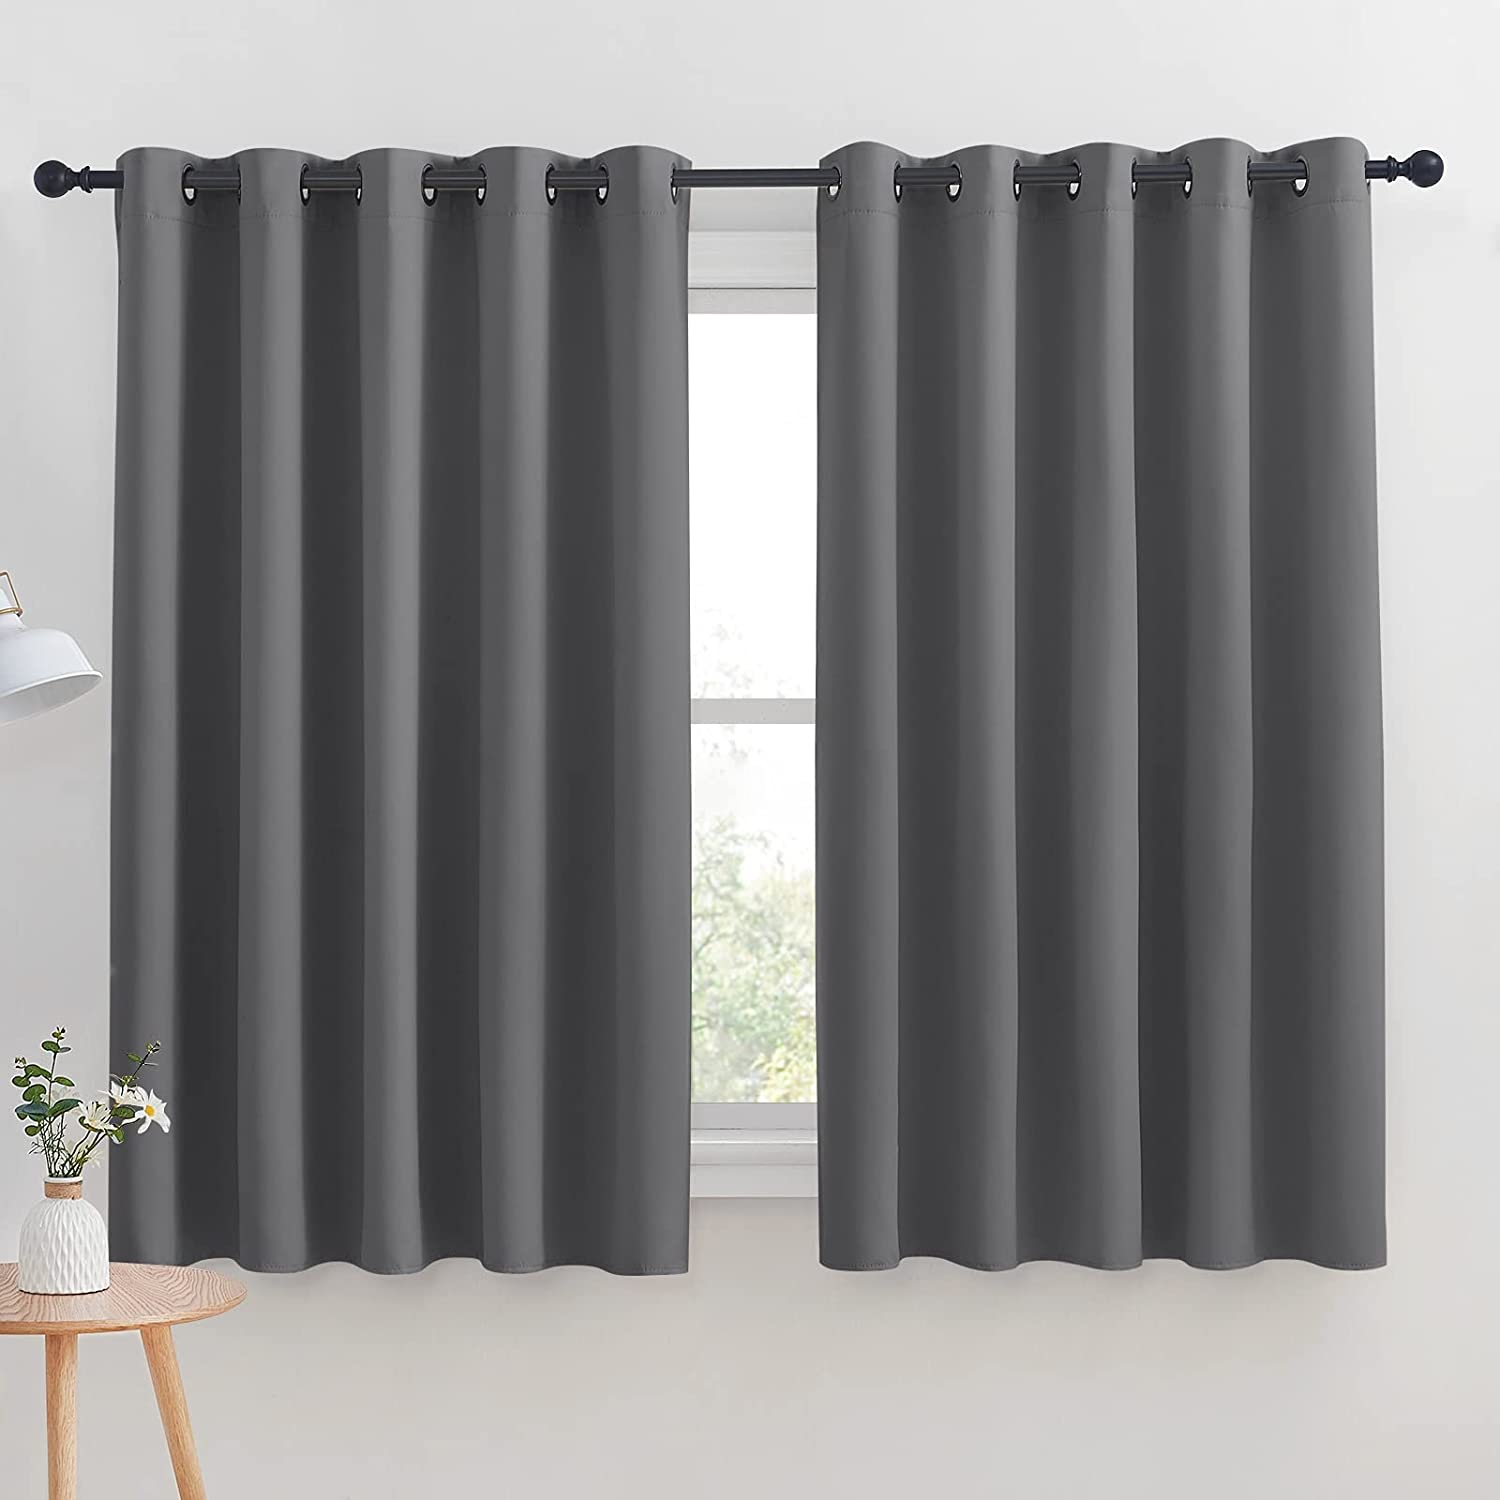 NICETOWN Grey Blackout Curtain Max 70% OFF All items free shipping Panels Bedroom for Insul Thermal